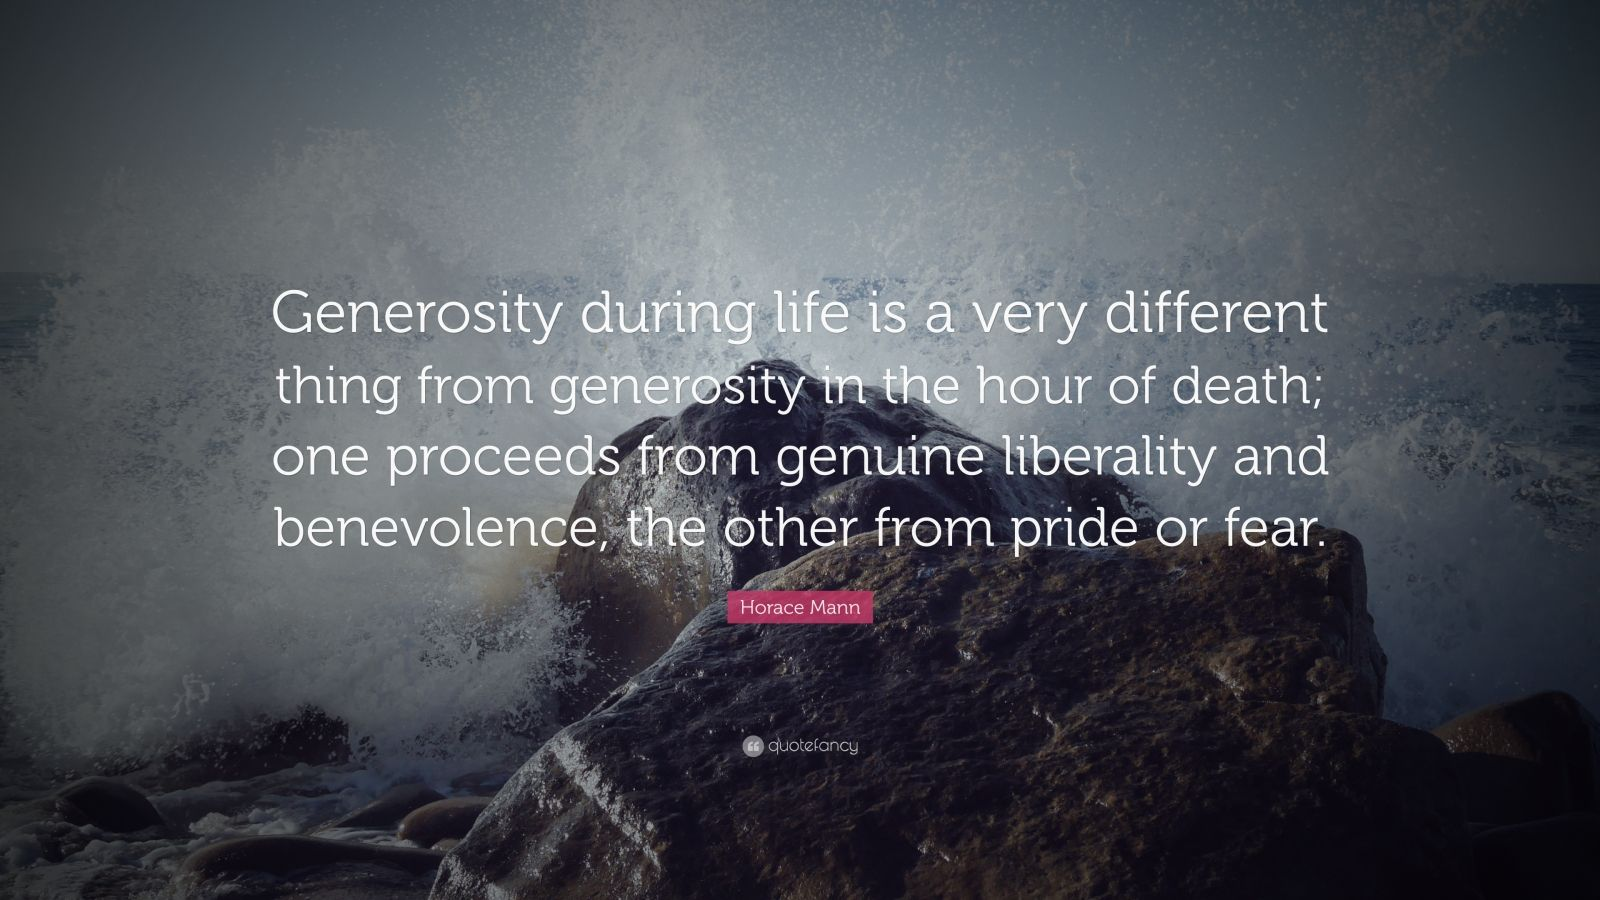 """Horace Mann Quote: """"Generosity during life is a very different thing from generosity in the hour of death; one proceeds from genuine liberality and benevolence, the other from pride or fear."""""""